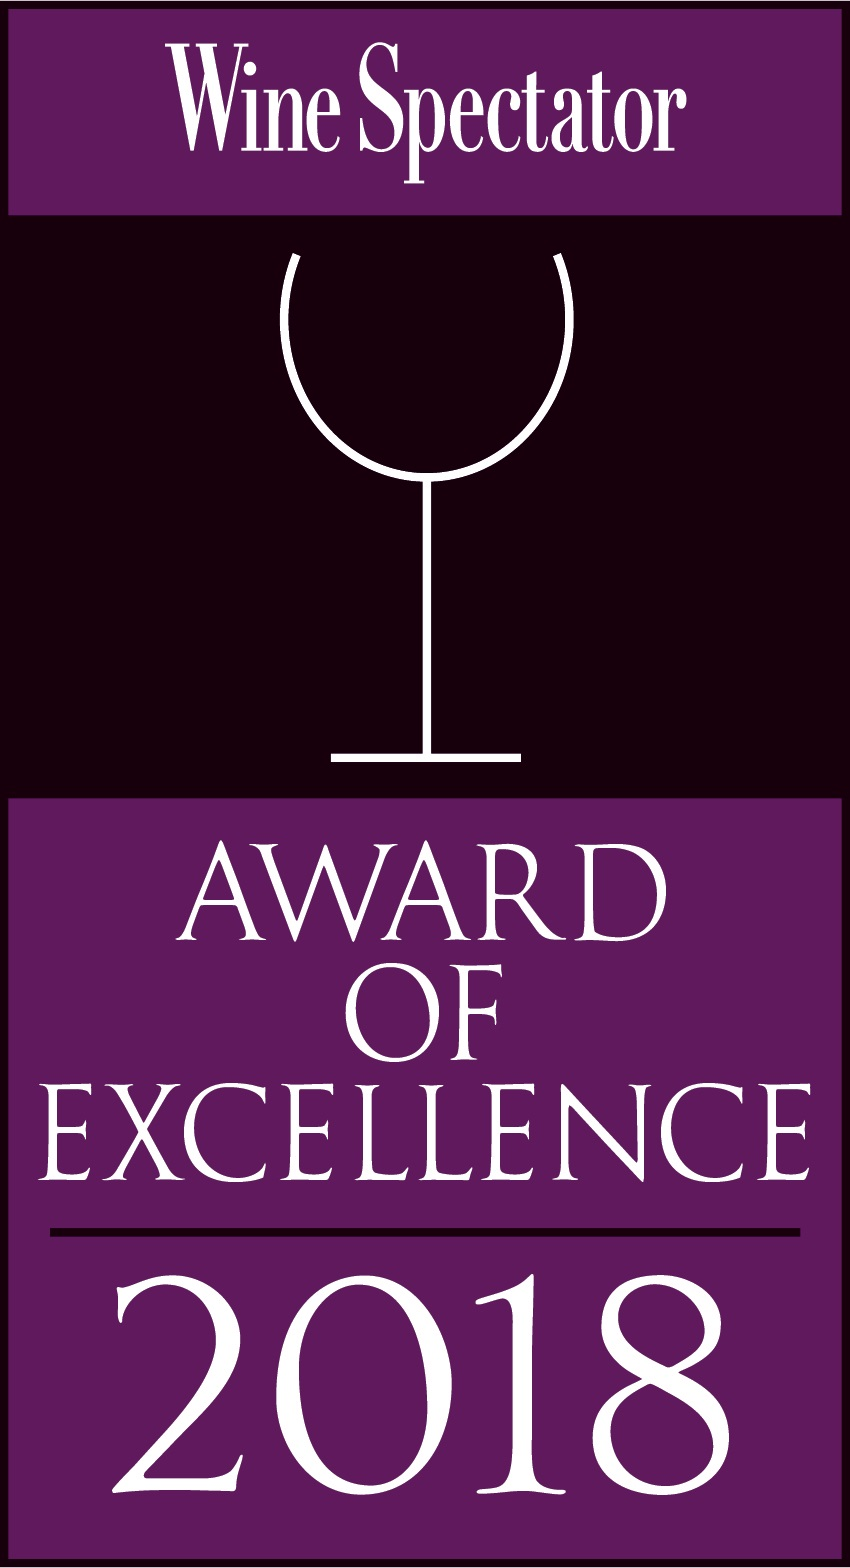 WineSpectator Award 2018